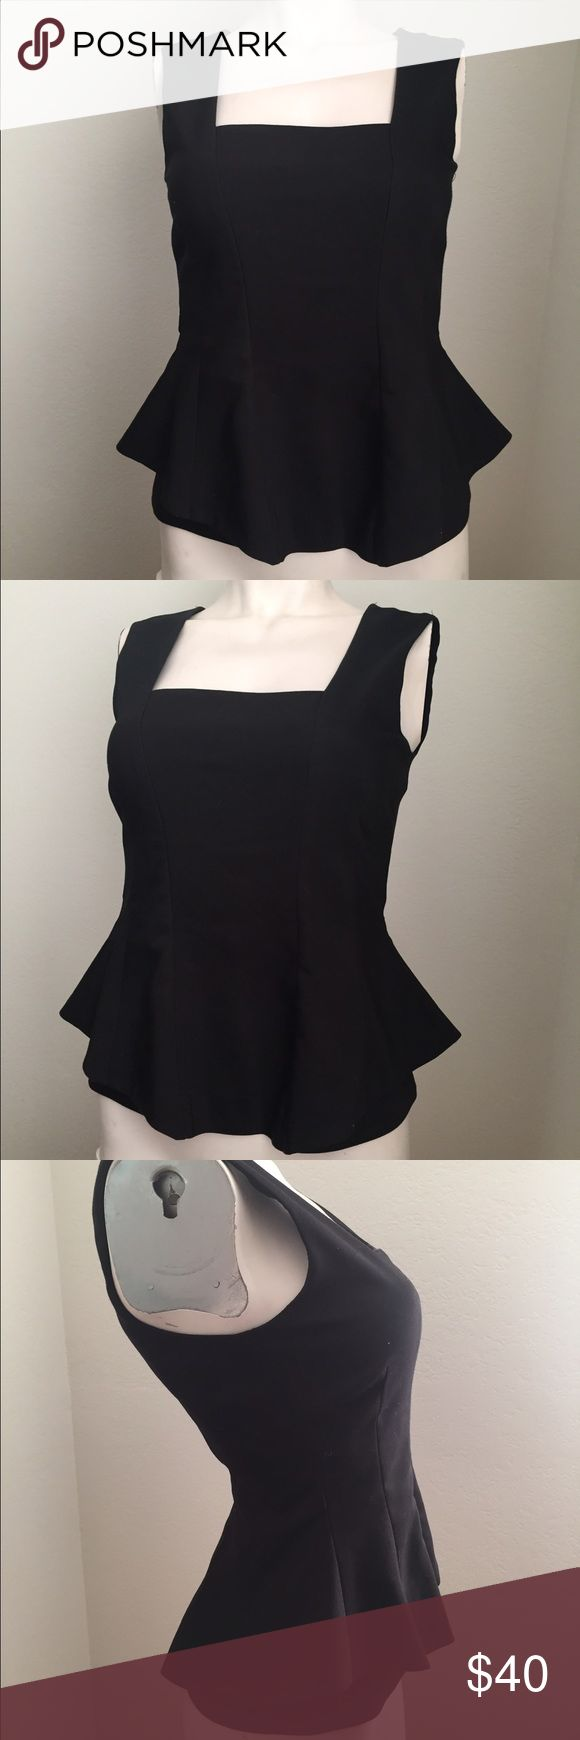 Zara peplum top Gorgeous black peplum top by Zara. Hugs and accentuates curves. Invisible zipper down the back. Perfect for a date night! Zara Tops